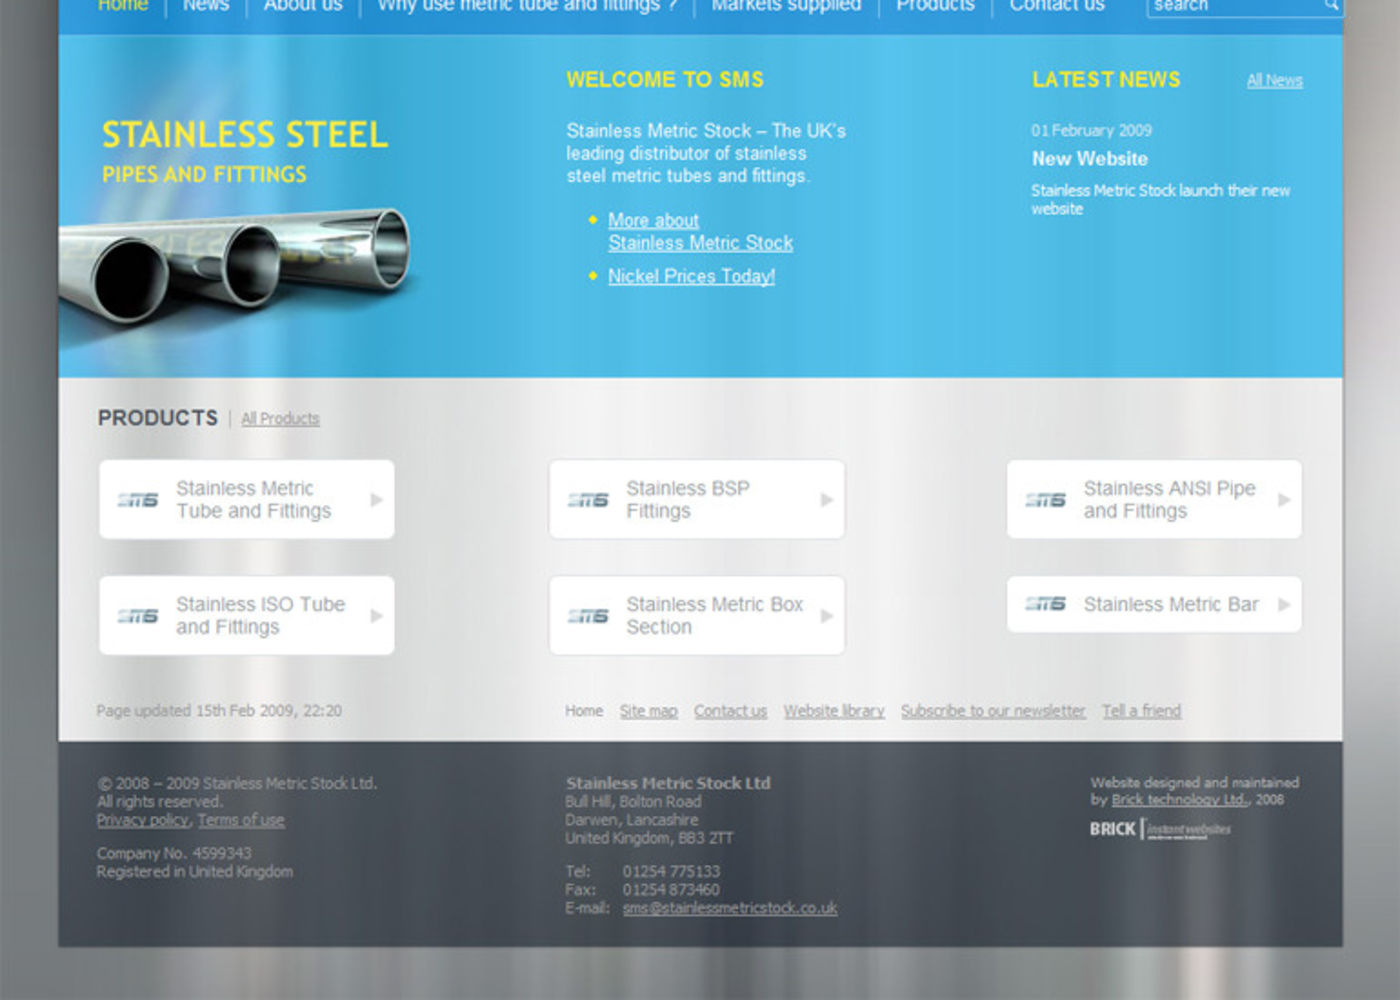 Stainless Metric Stock Ltd Homepage footer - SMS Ltd